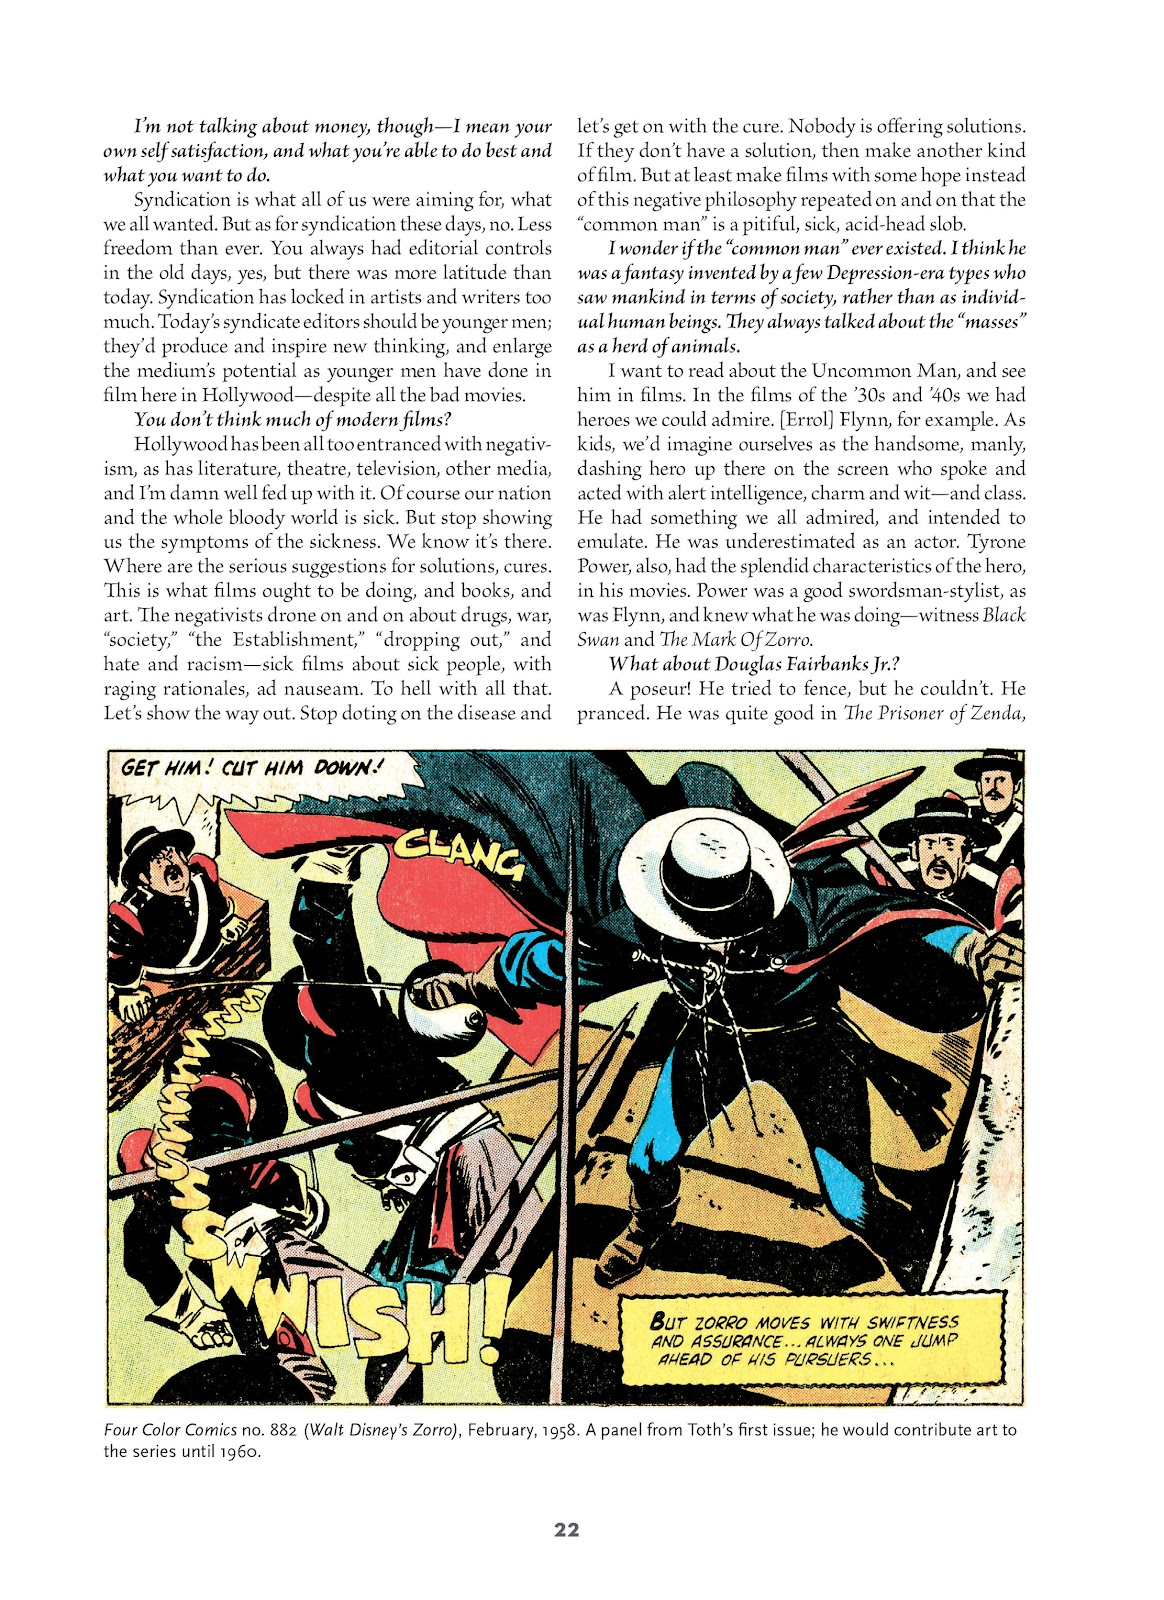 Read online Setting the Standard: Comics by Alex Toth 1952-1954 comic -  Issue # TPB (Part 1) - 21